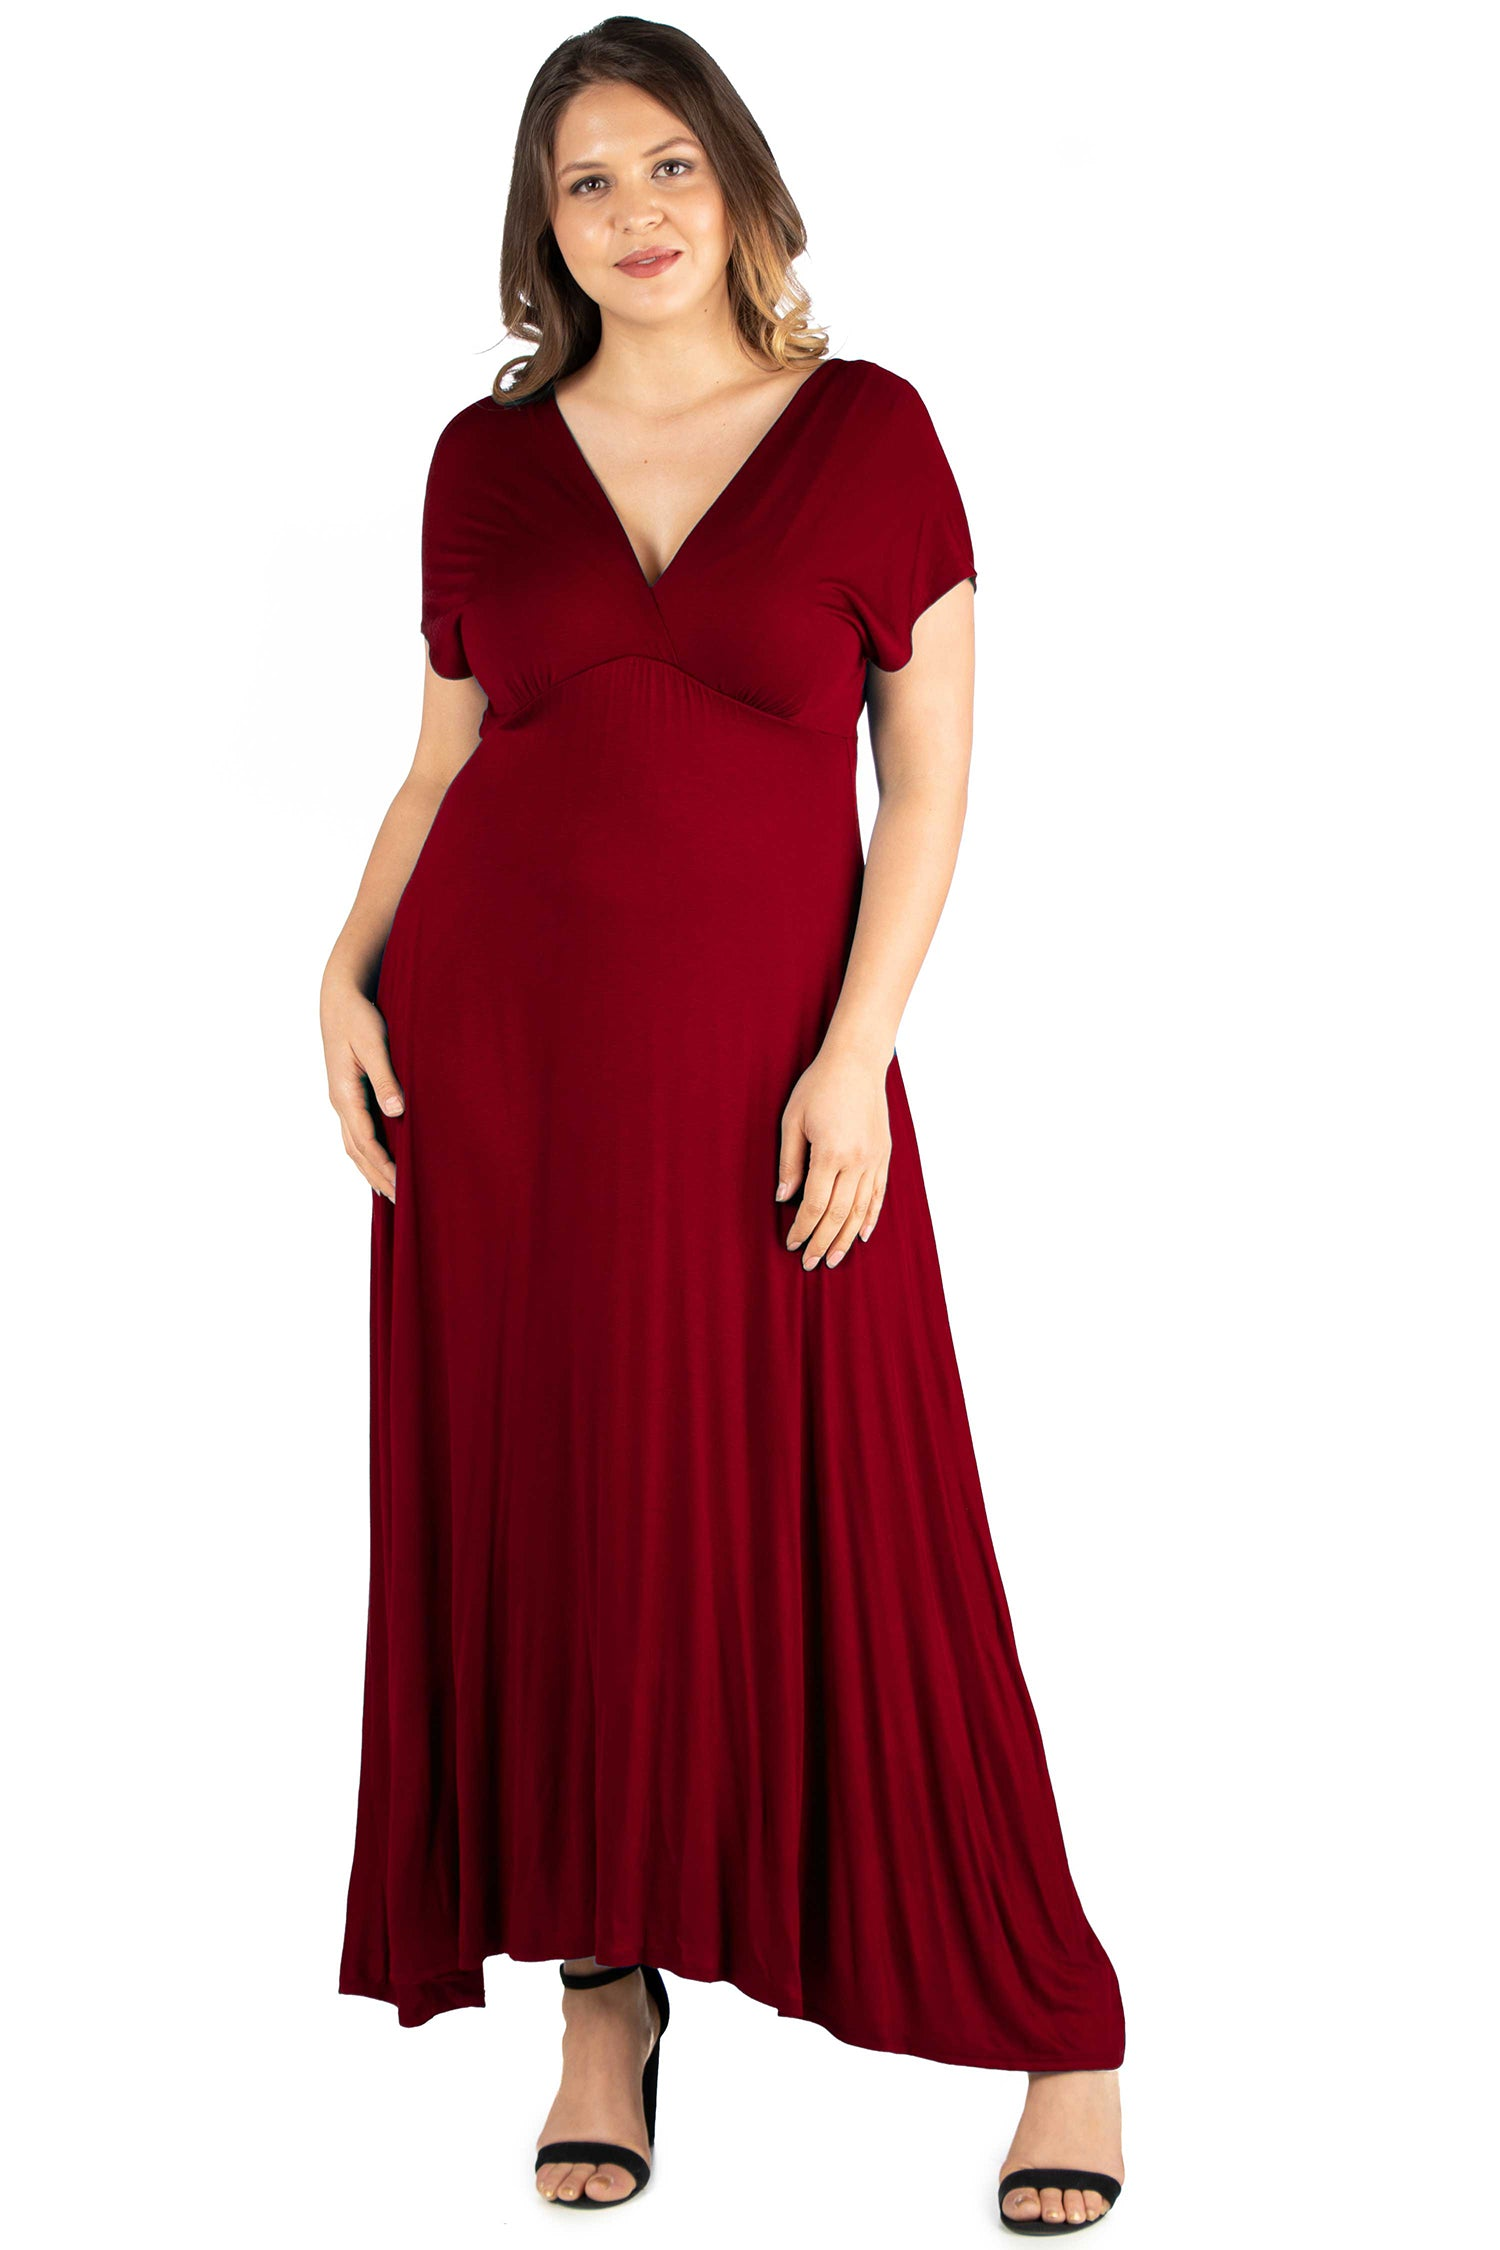 24seven Comfort Apparel Empire Waist V Neck Plus Size Maxi Dress-DRESSES-24Seven Comfort Apparel-WINE-1X-24/7 Comfort Apparel